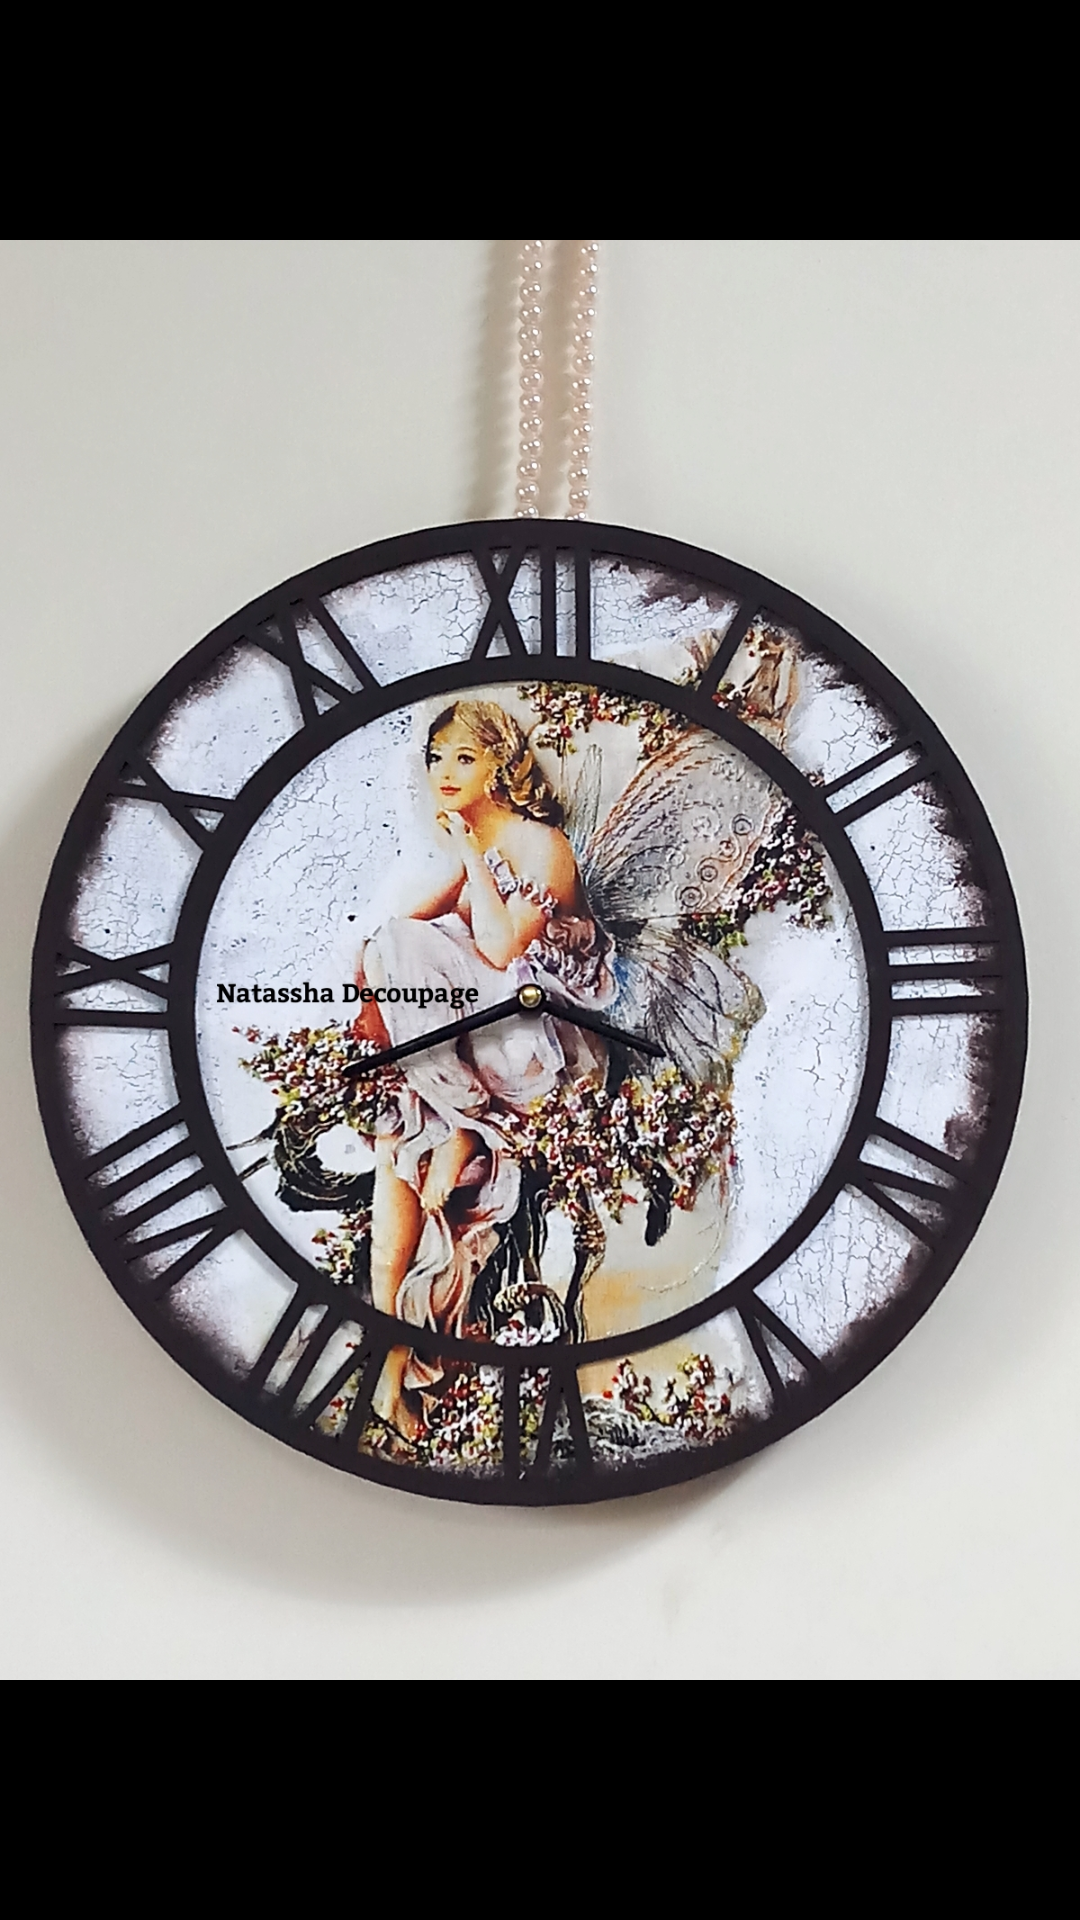 Mixed media vintage wall clock workshop in Bangalore